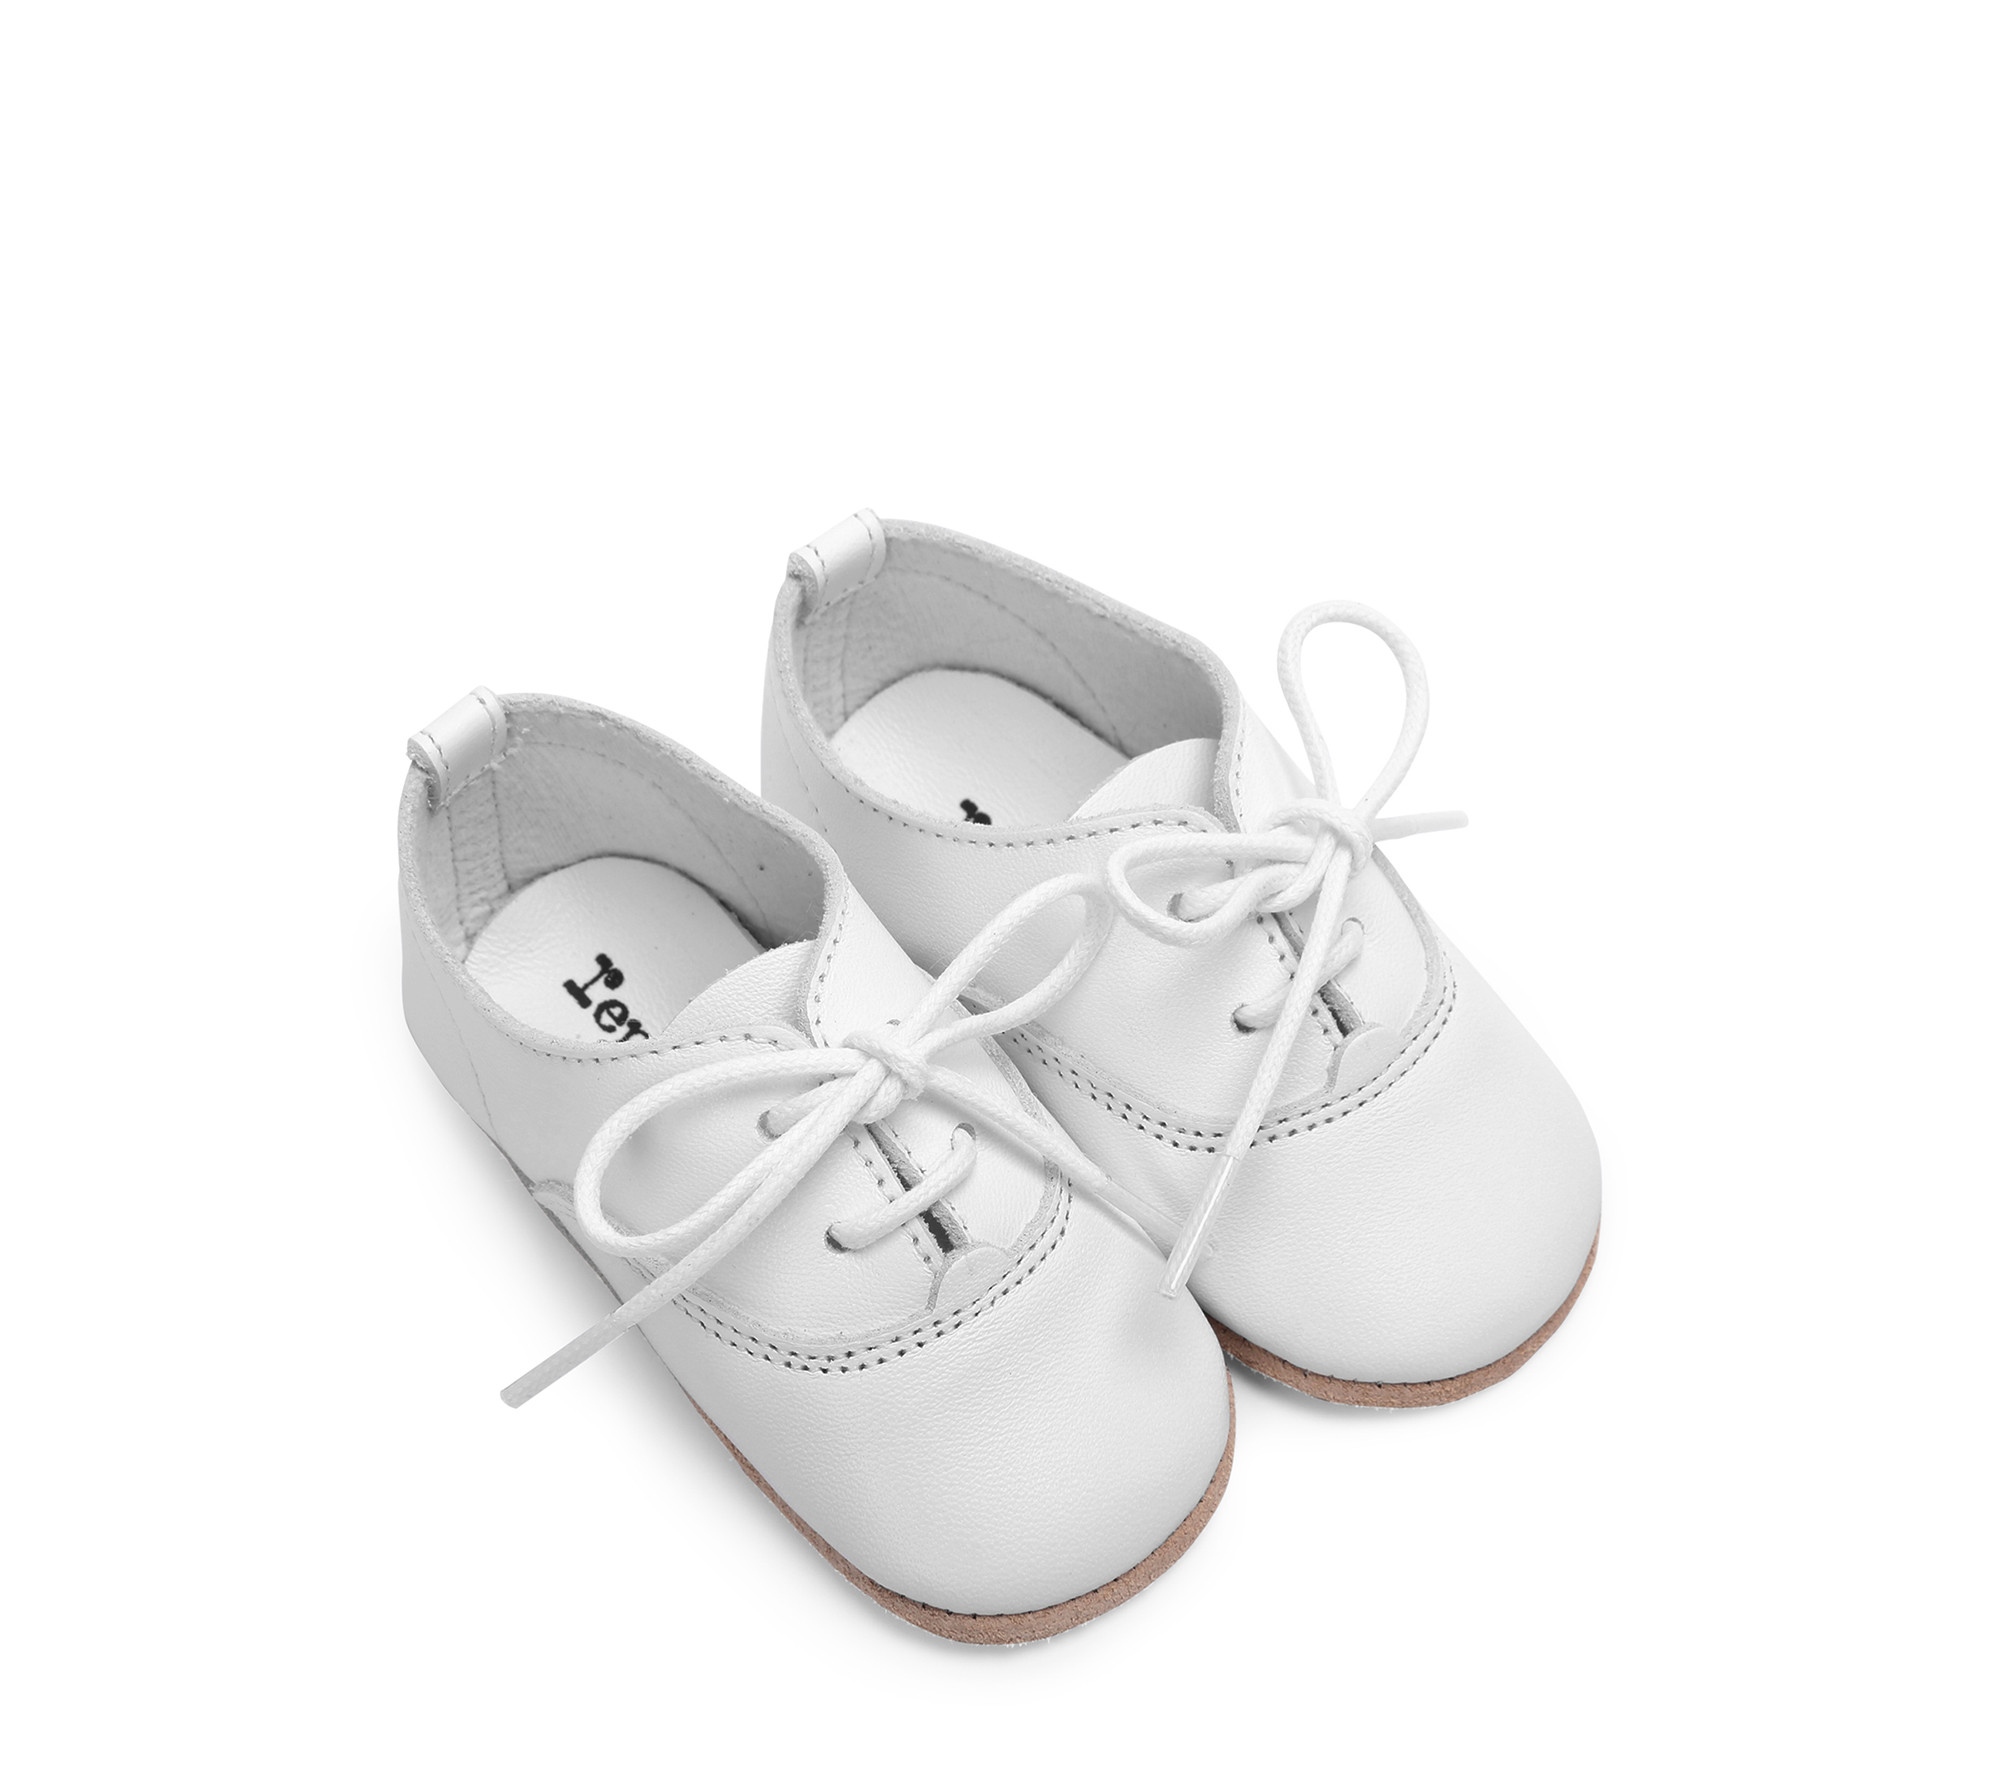 Lulu oxford shoes - Baby